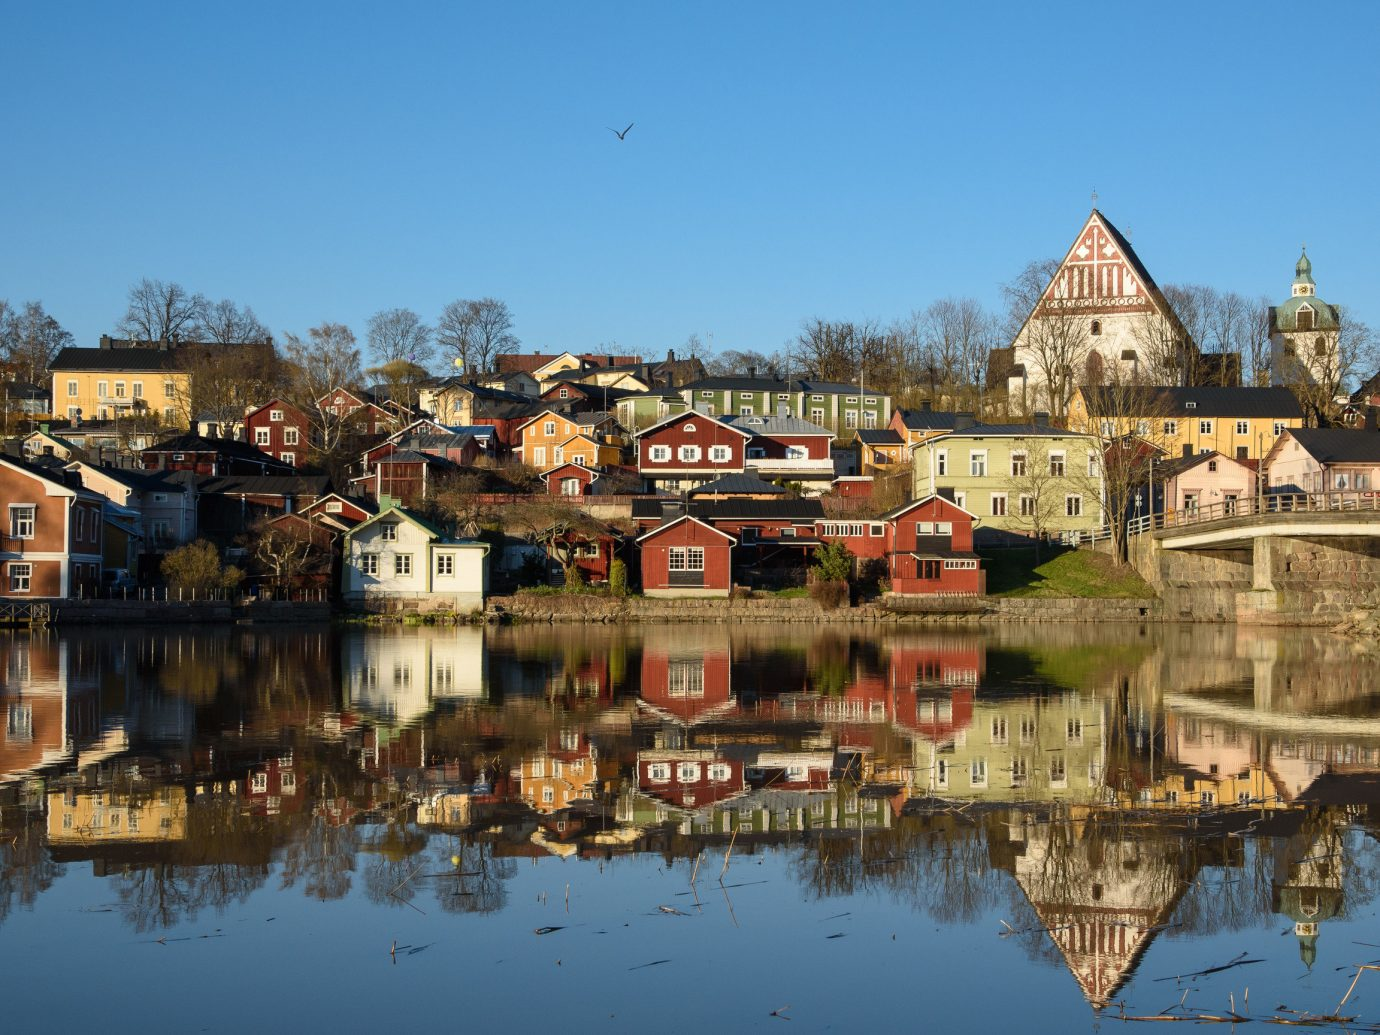 Finland Trip Ideas outdoor building water sky reflection Town waterway City Boat River tree water castle château bank house tourist attraction Village evening watercourse Lake tourism Canal plant tours old several